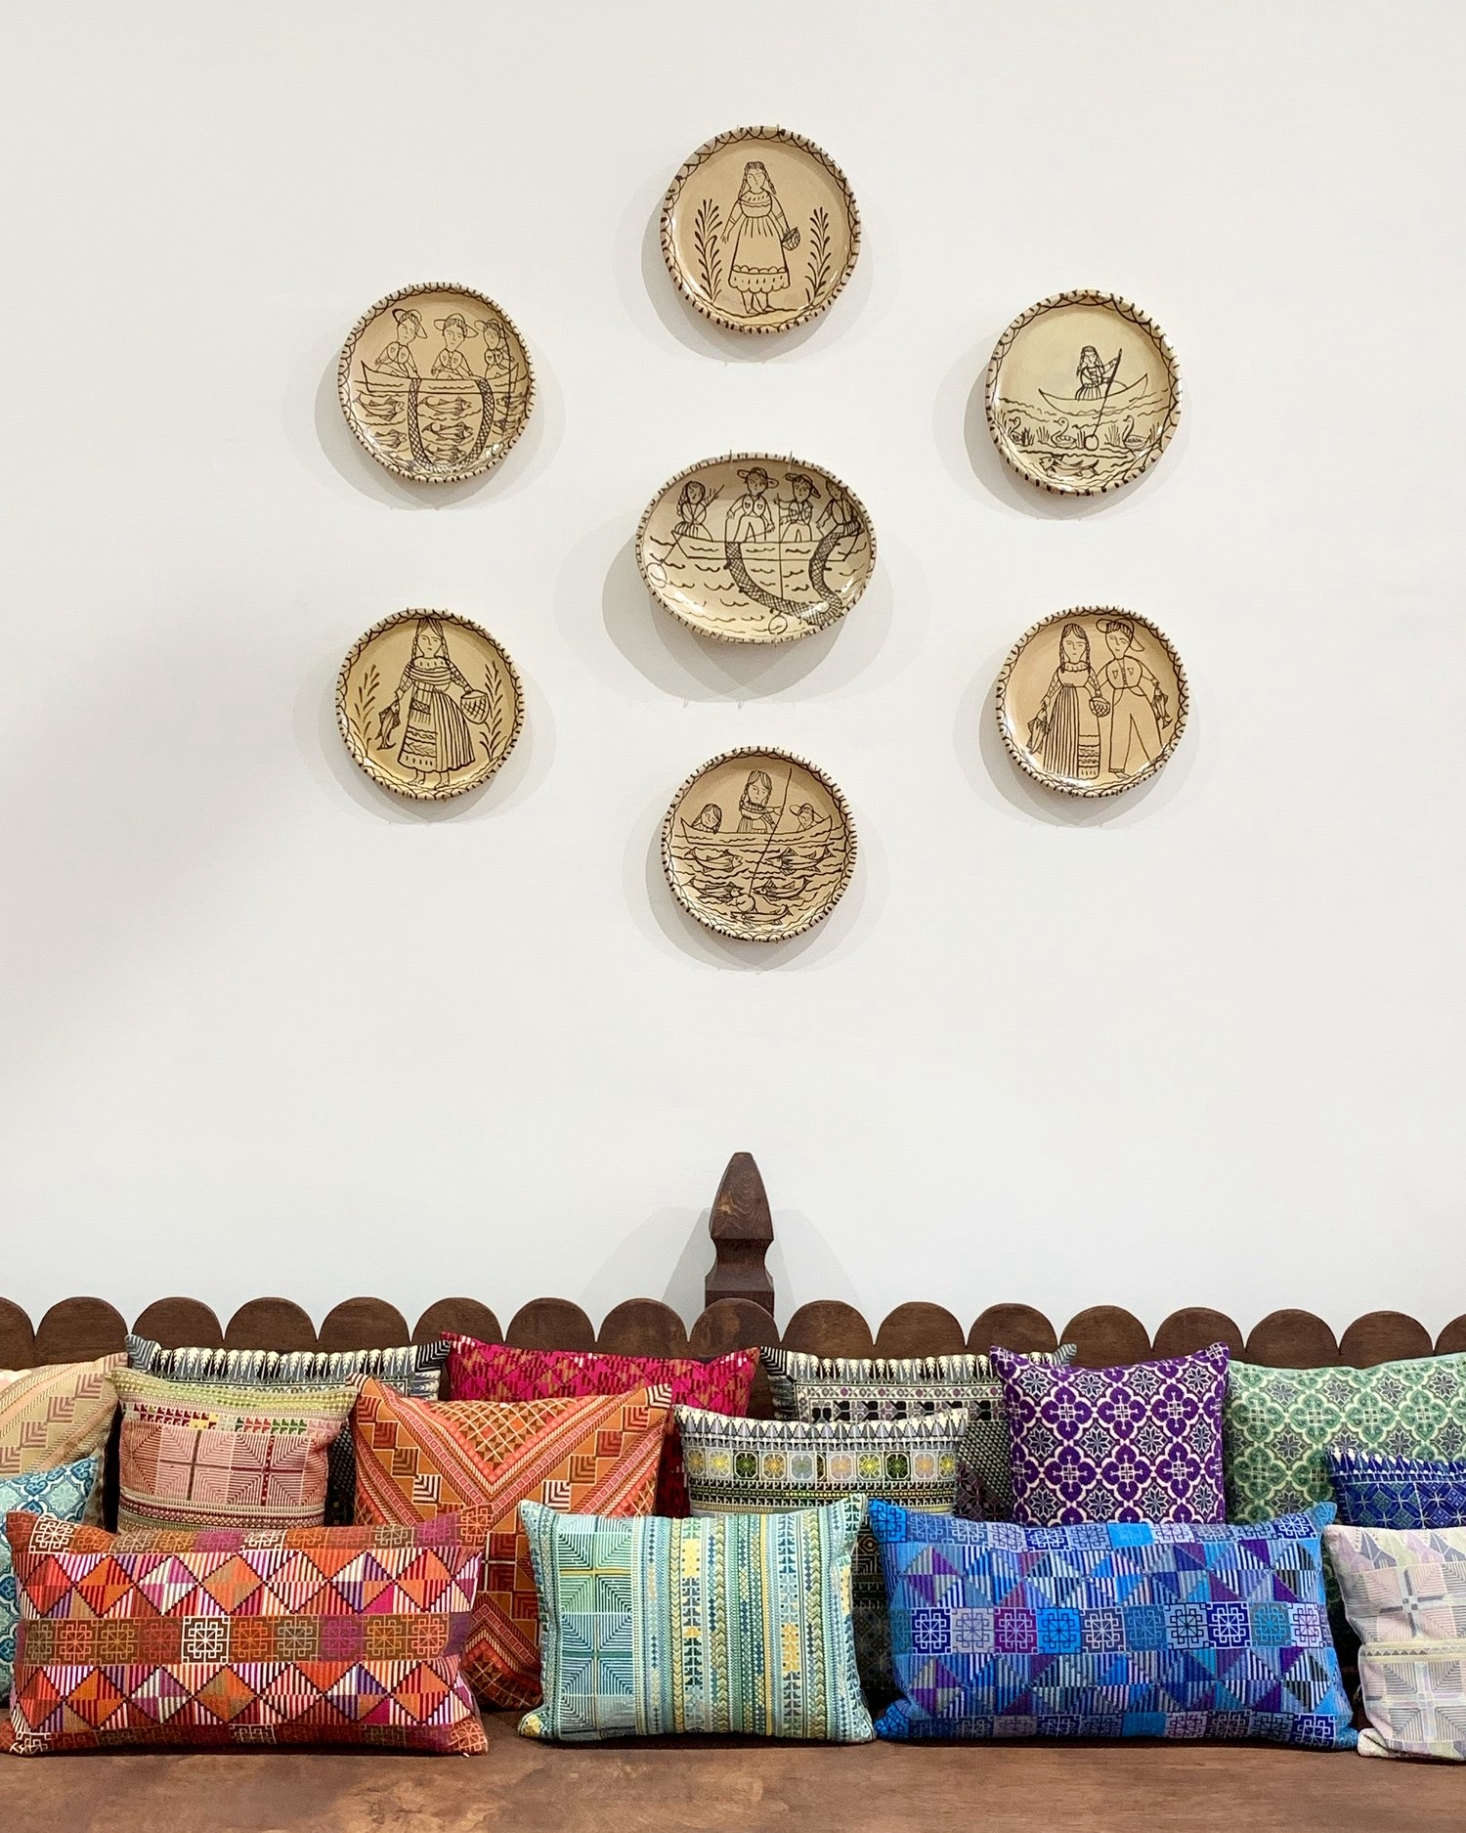 """We've been admiring """"plate walls"""" adorned with matching plates from a series (shown above, a collection ofvintage plates from Michoacán are mounted above a collection of Kissweh Pillows pillows at a recent Kneeland Pop-Up in Los Angeles) or a mix of collected pieces. (Also seeBugandé Cafe: A Moody, Eccentric Restaurant in Milan, where even the ceilings are adorned with plates.)"""